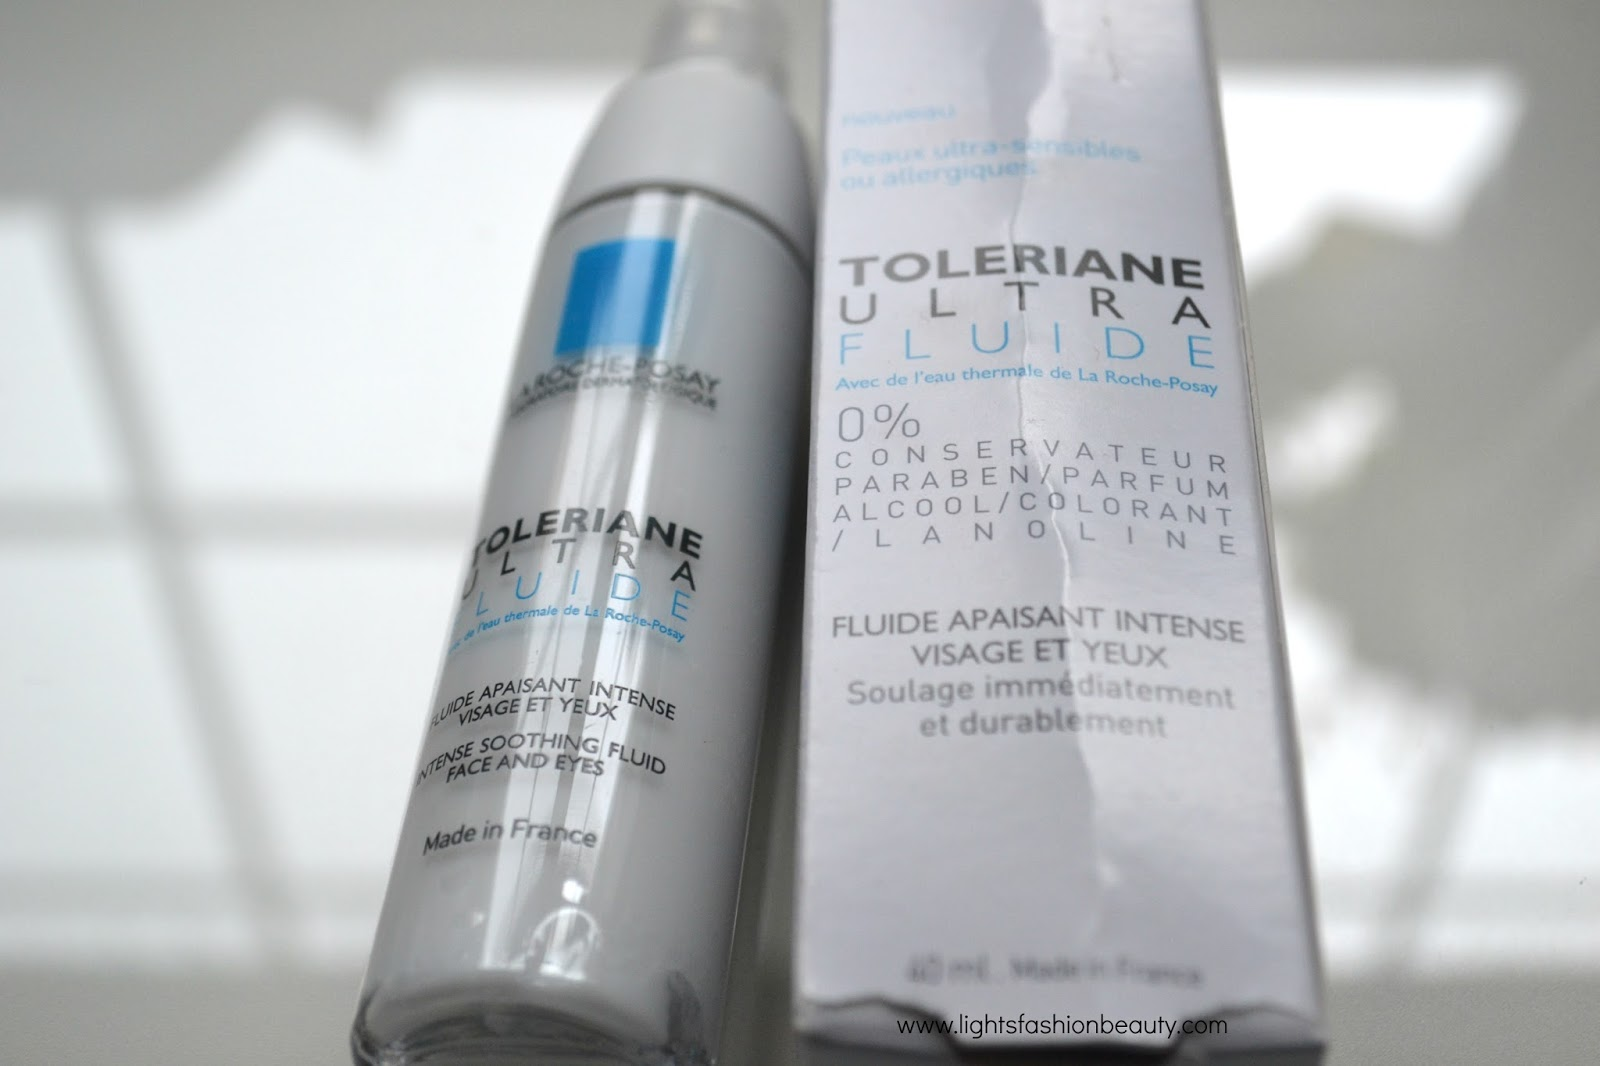 La Roche Posay Toleriane Ultra Fluide review, La Roche Posay Toleriane Ultra Fluide, winter skincare, lightsfashionbeauty, montreal beauty blogger, brown beauty blogger